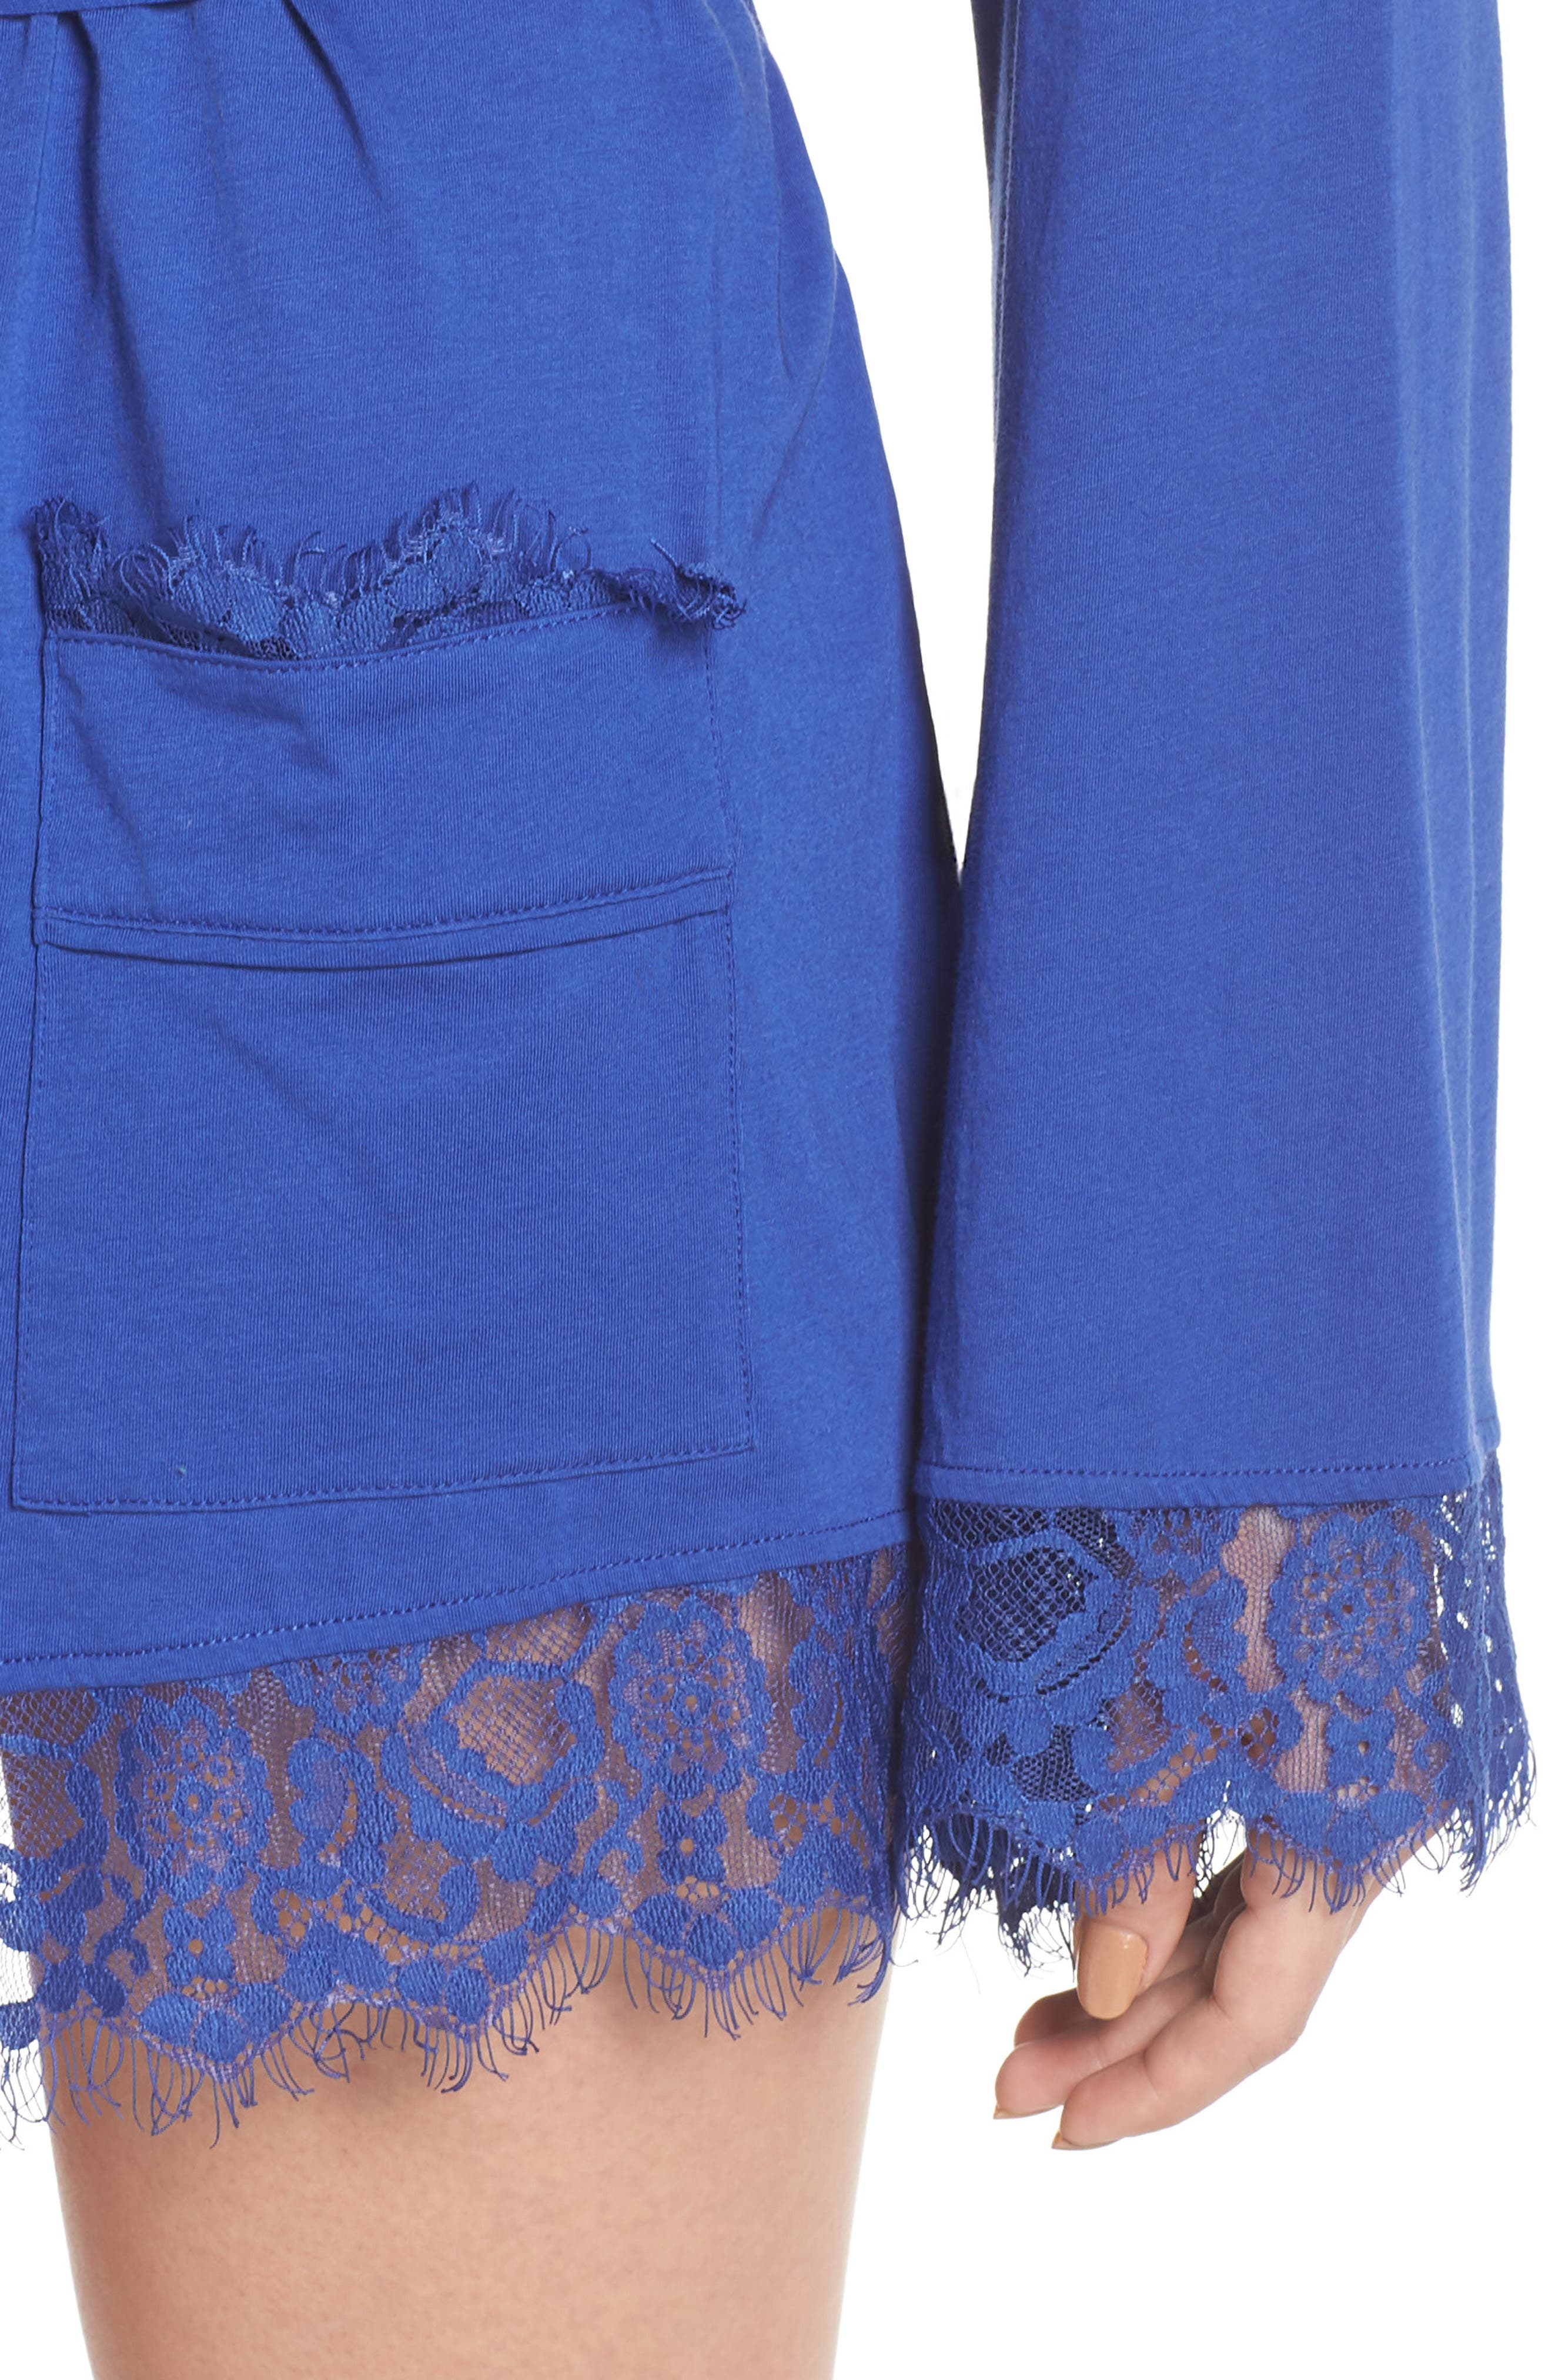 Sweetest Thing Robe,                             Alternate thumbnail 5, color,                             Blue